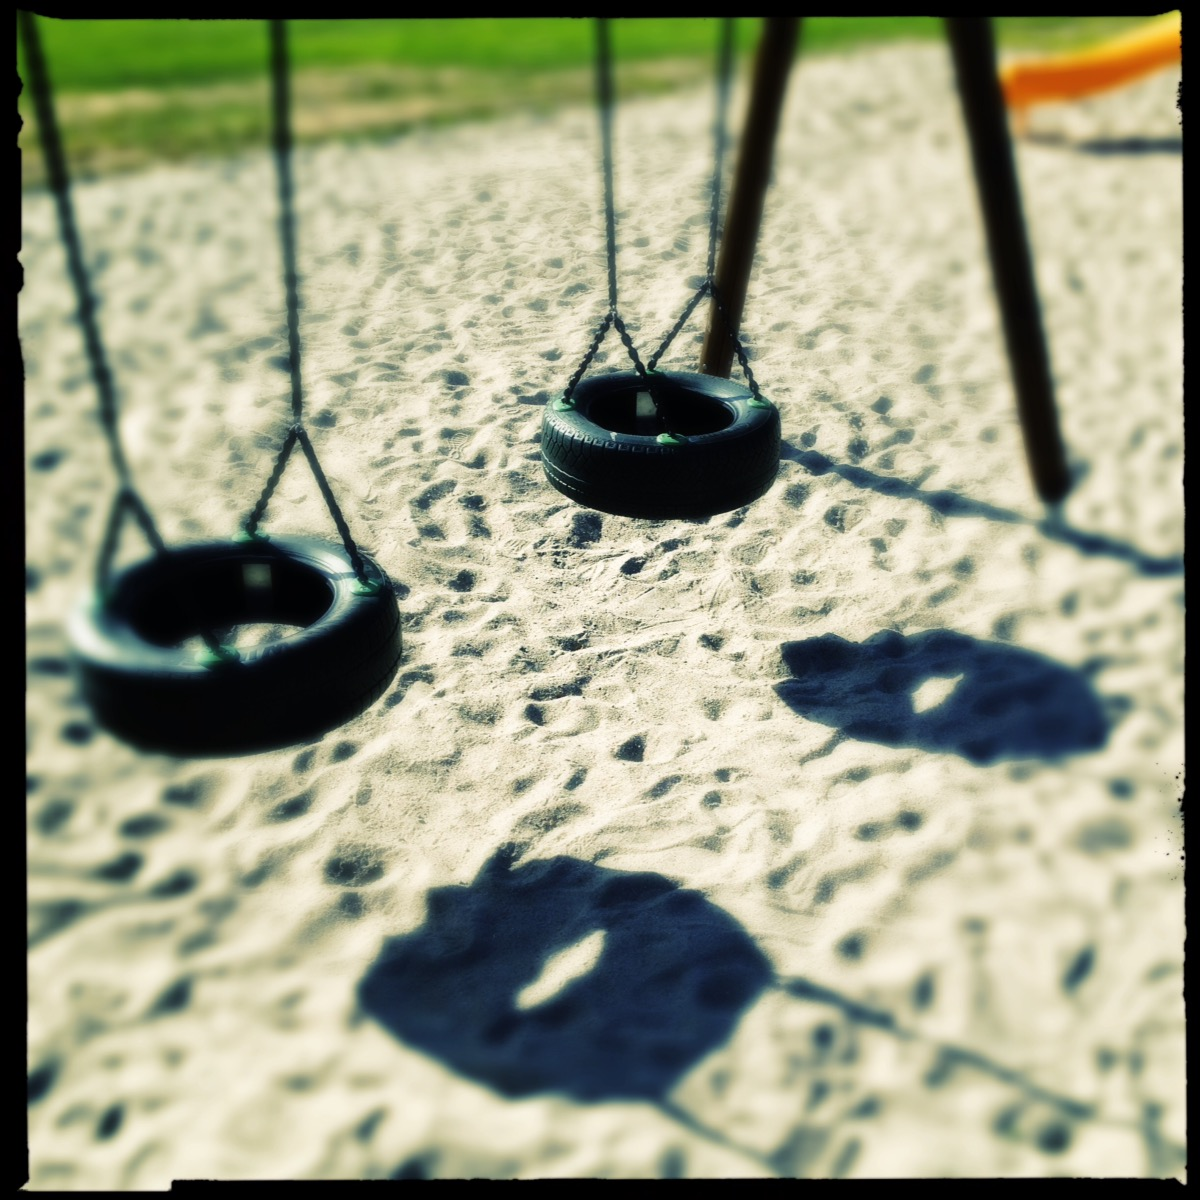 Two swings made of old tires